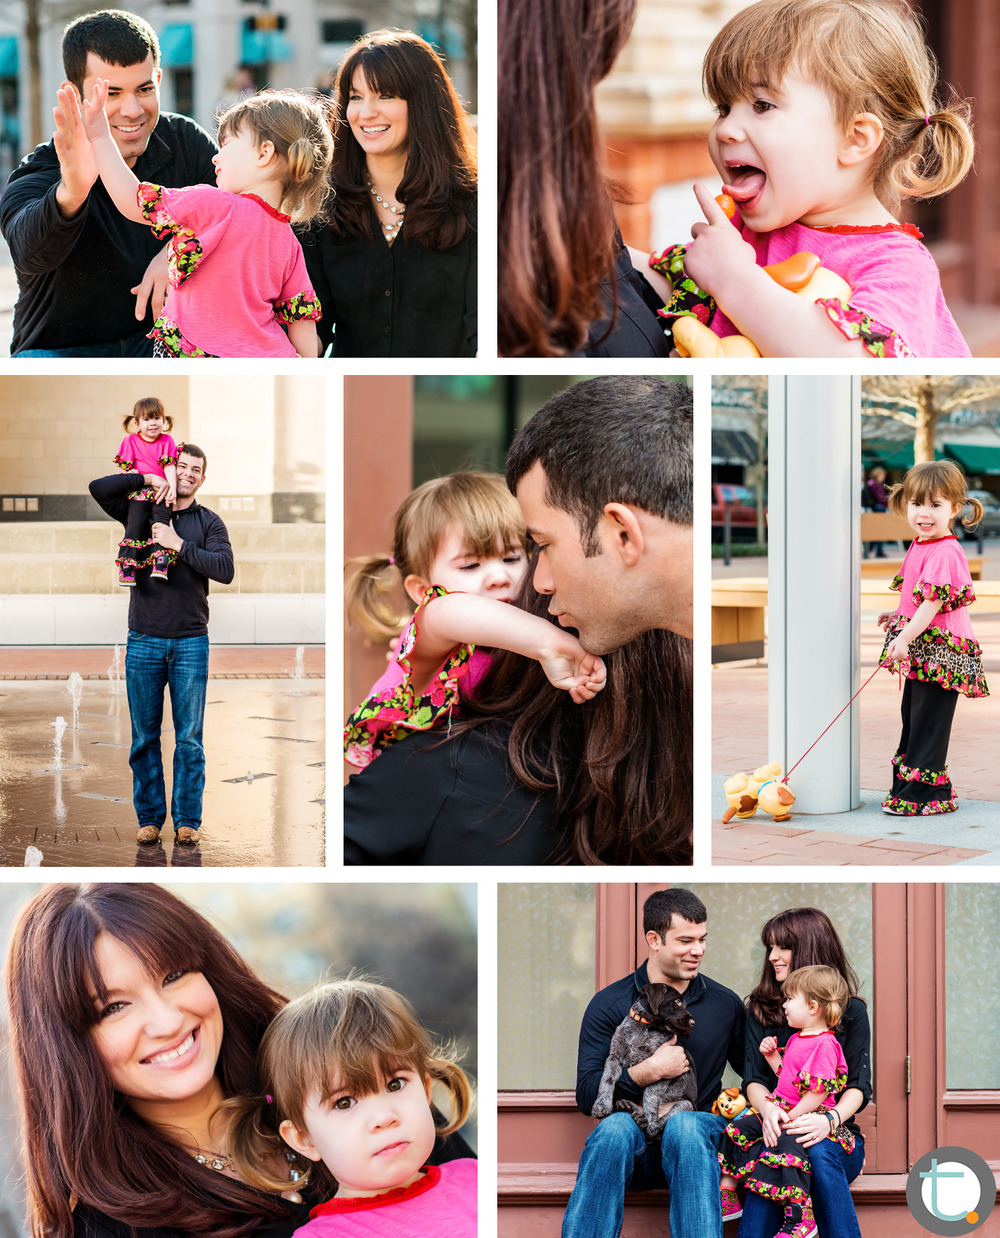 ftworth_plaza_sundancesquare_family_portraits_toddler_tracyallynphotography